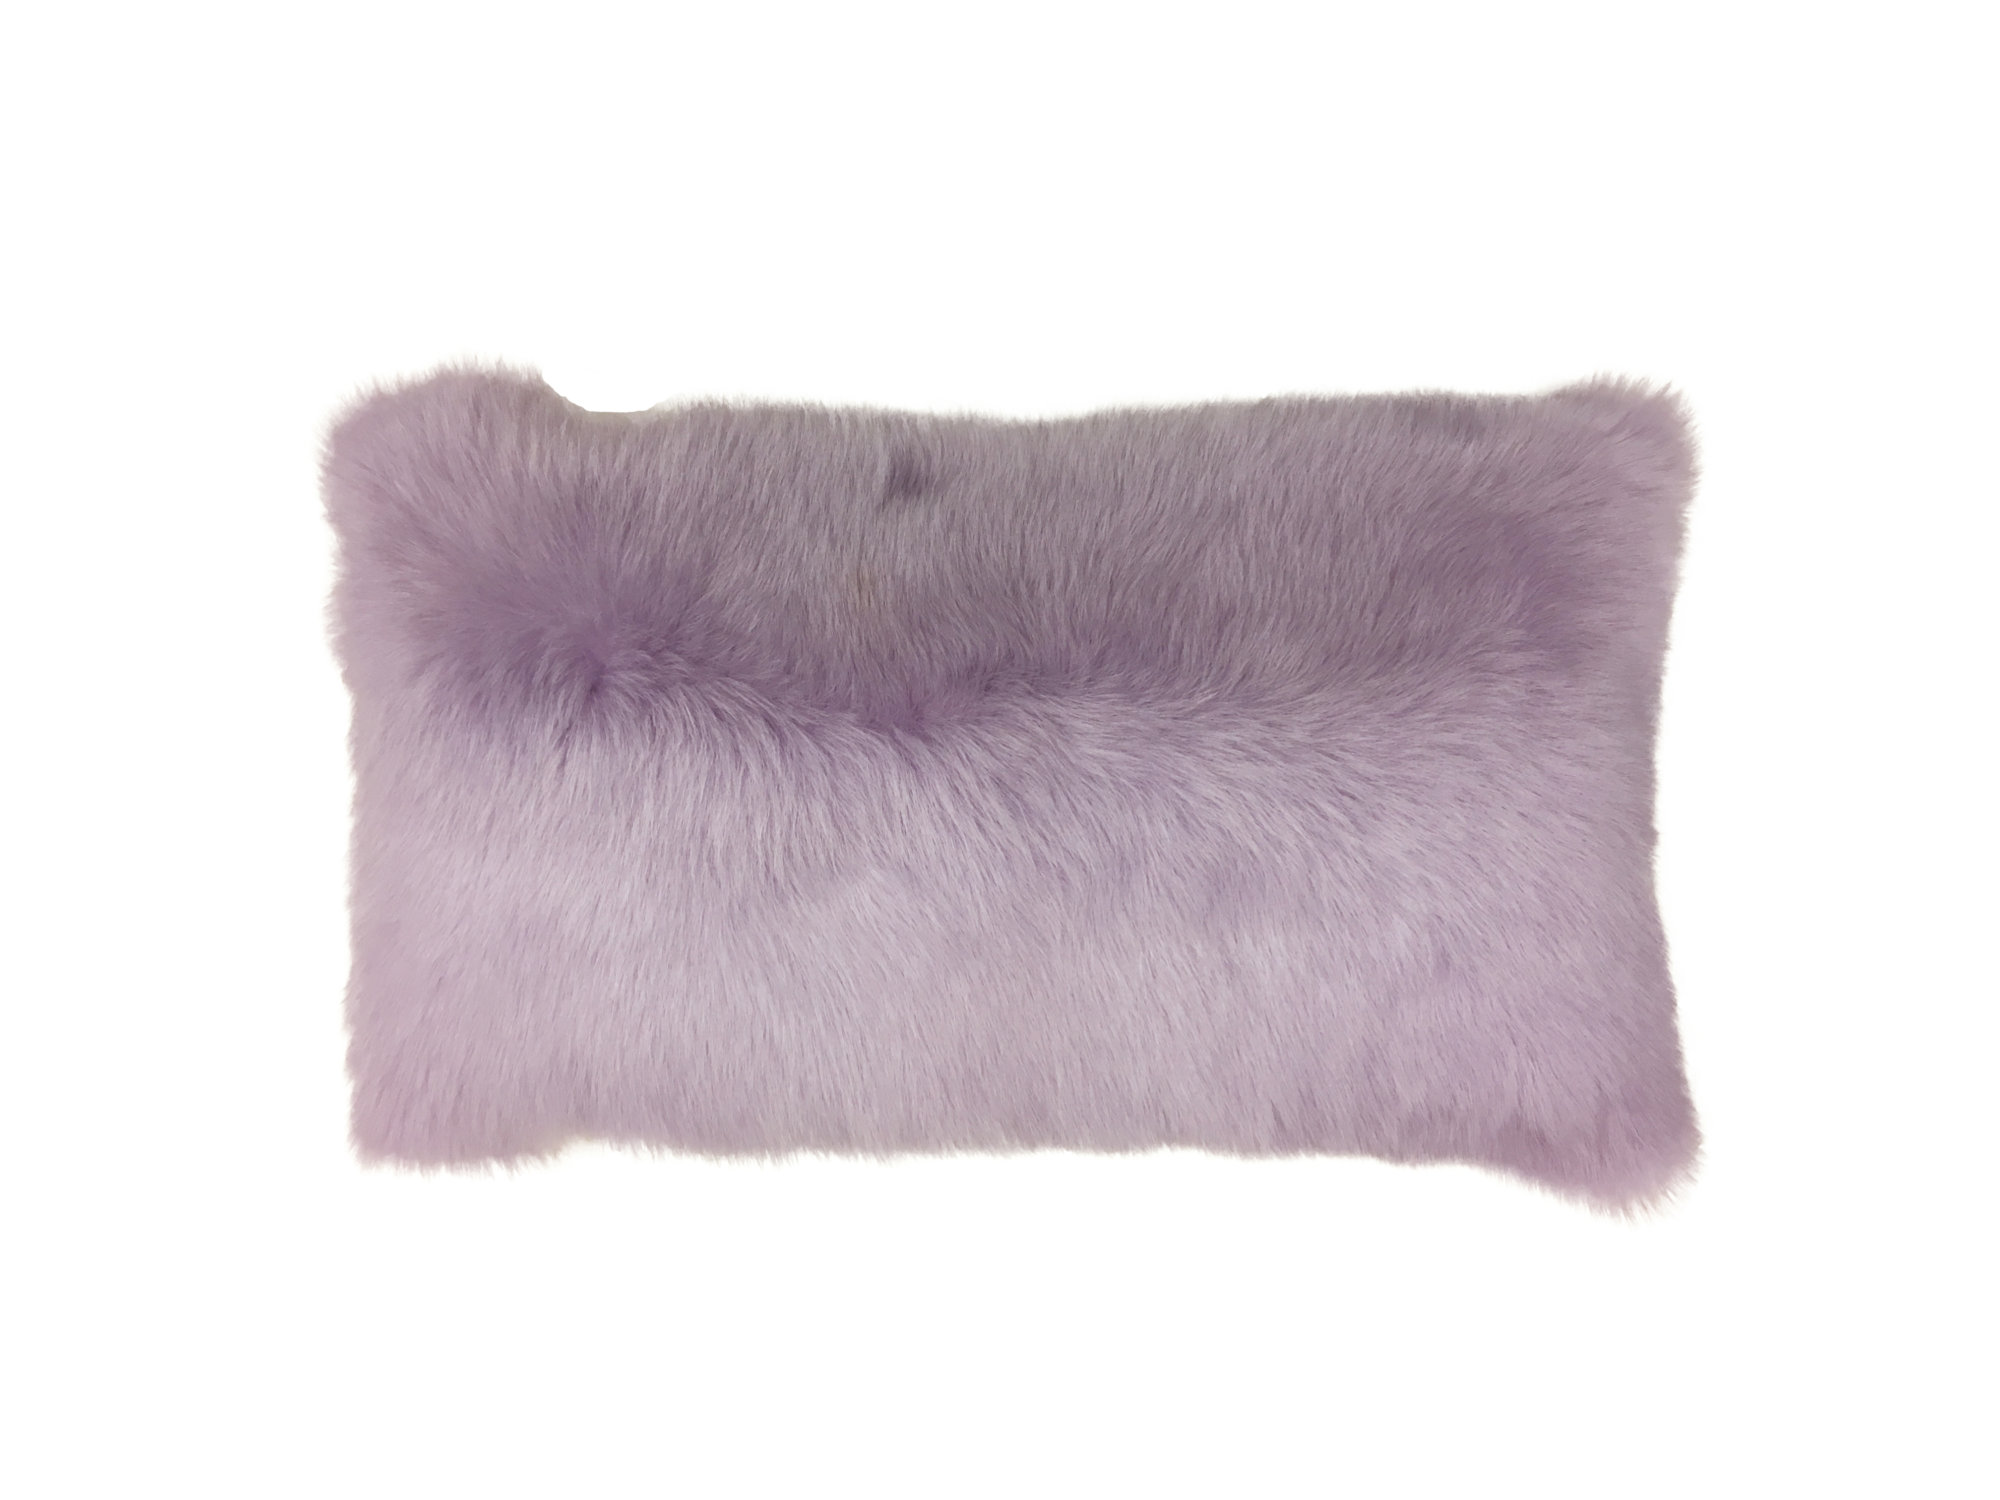 Shearling Pillow-Lilla-30x50cm-SPLILS2543050 - ANVOGG FEEL SHEARLING | ANVOGG